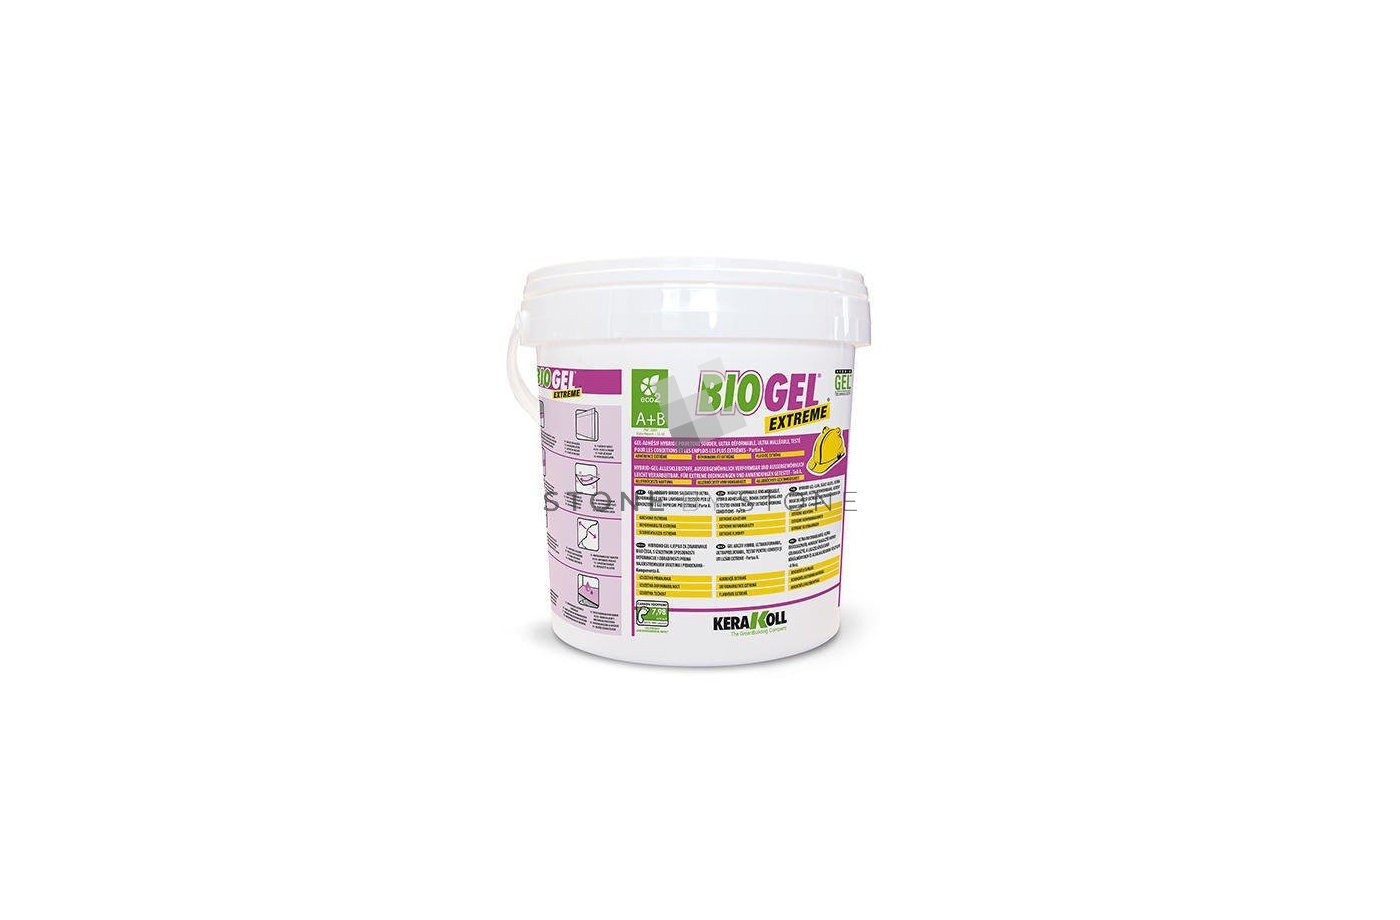 MORTIER COLLE FLEXIBLE ULTRA BLANC - BIOGEL EXTREME - KERAKOLL - 10KG